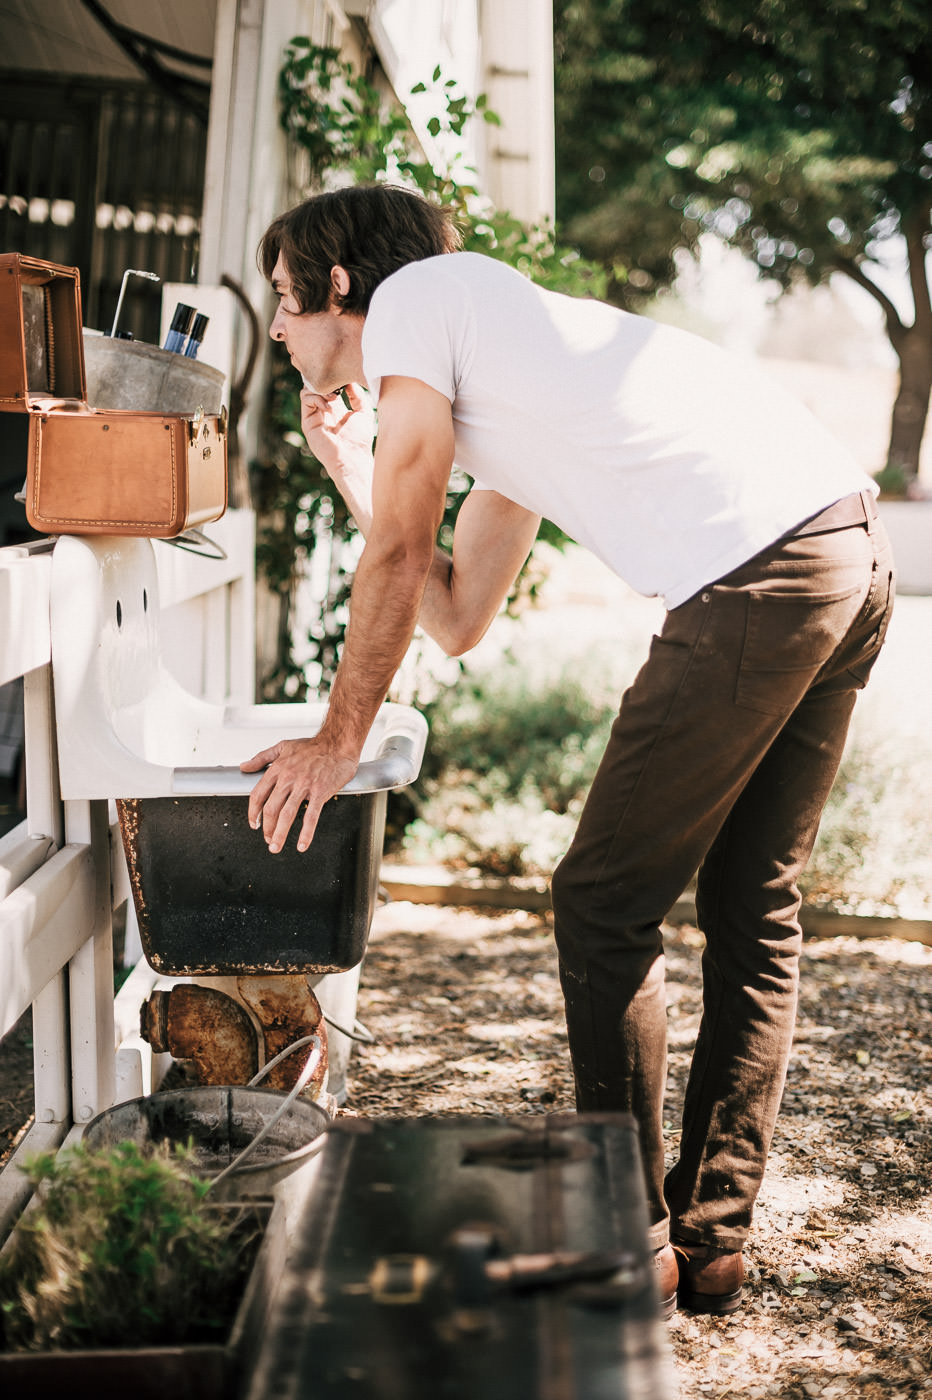 Groom gets a shaving kit from his bride as a gift and uses it at rustic washing station before his Temecula wine country wedding